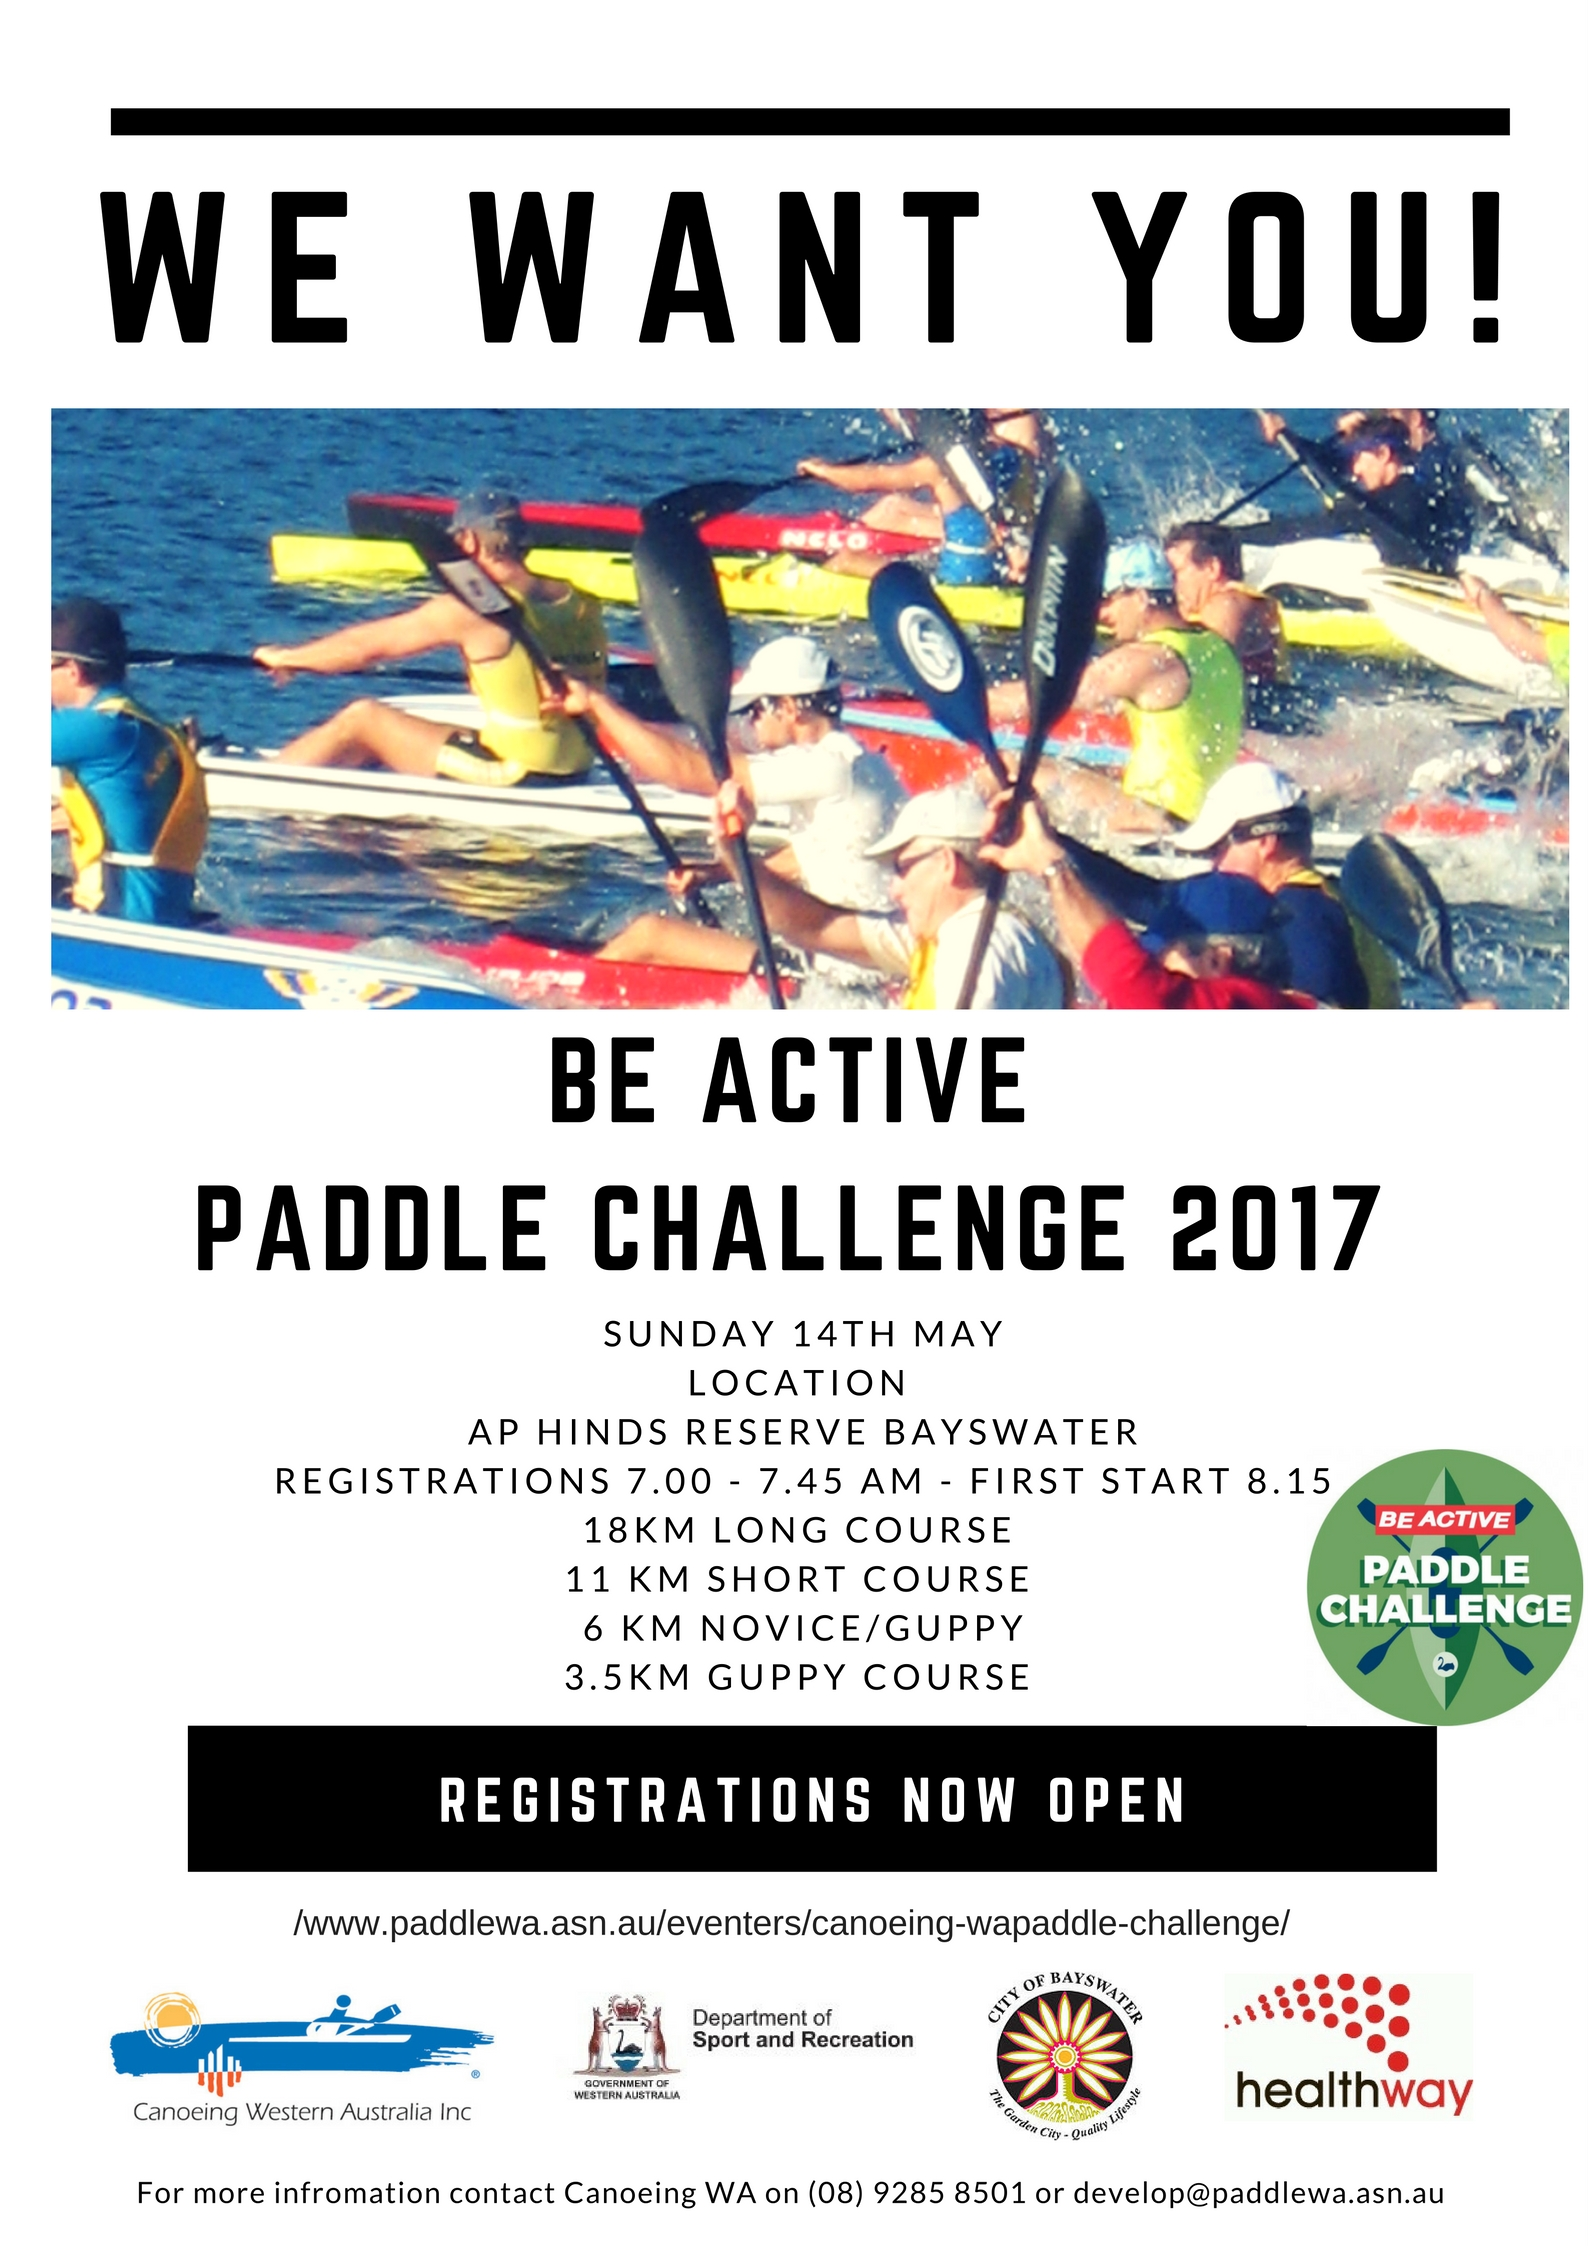 Be active Paddle Challenge May 14th – Canoeing WA